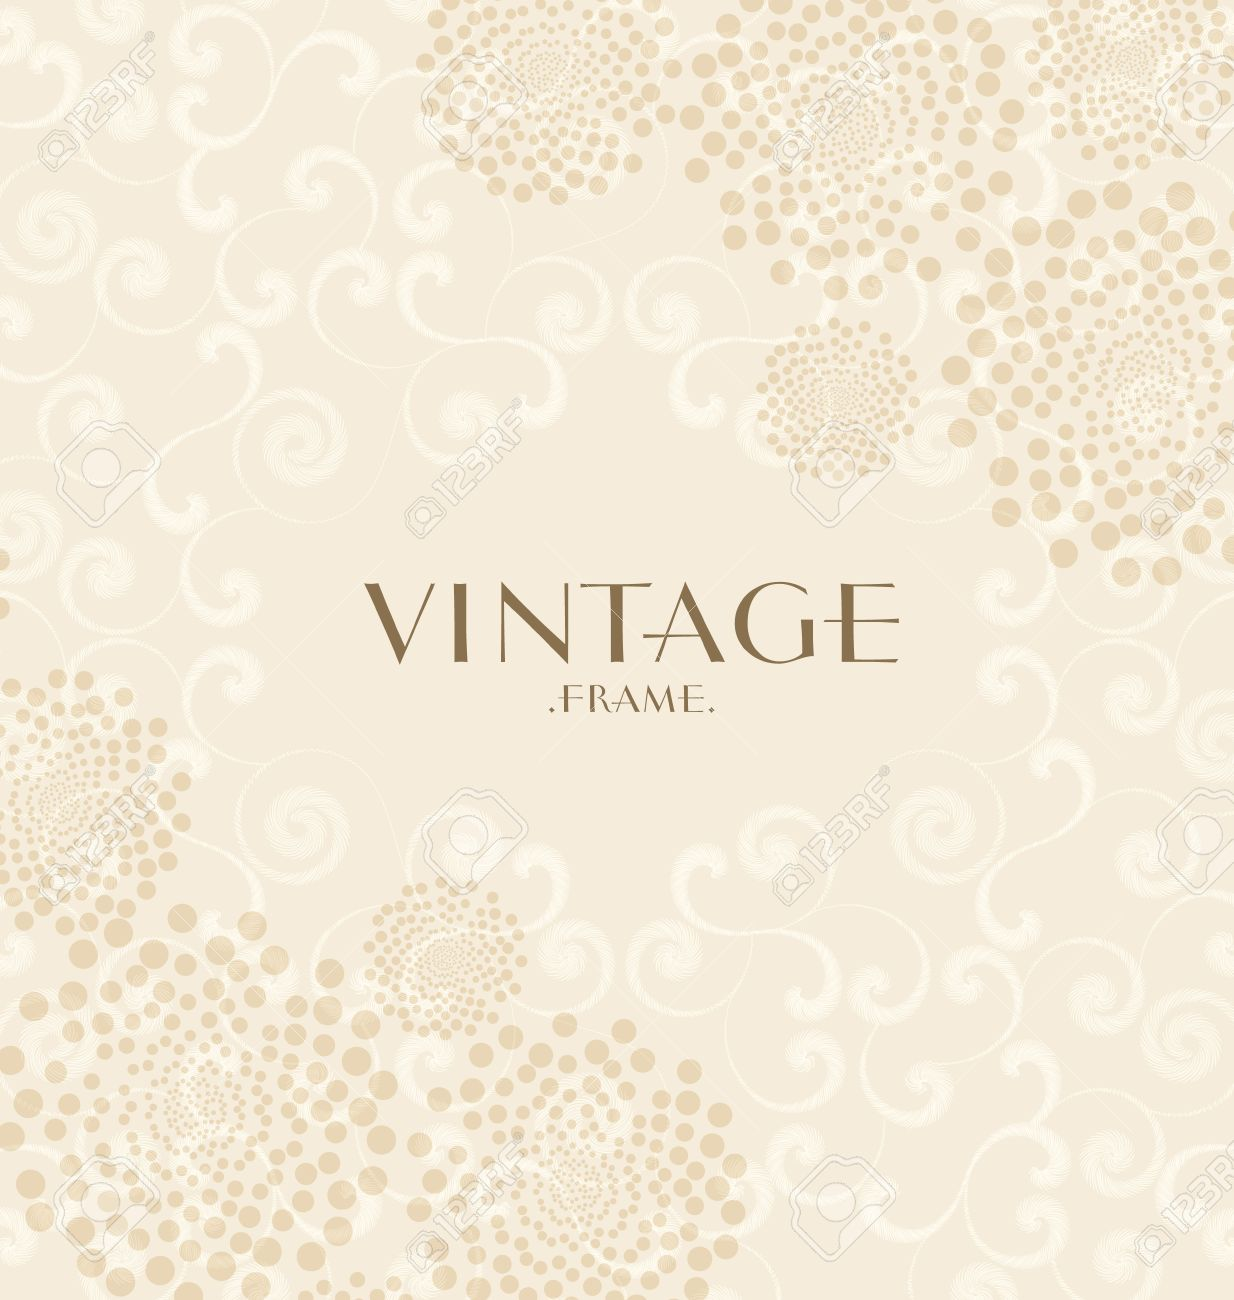 Vintage Frame On A Light Brown Background Royalty Free Cliparts